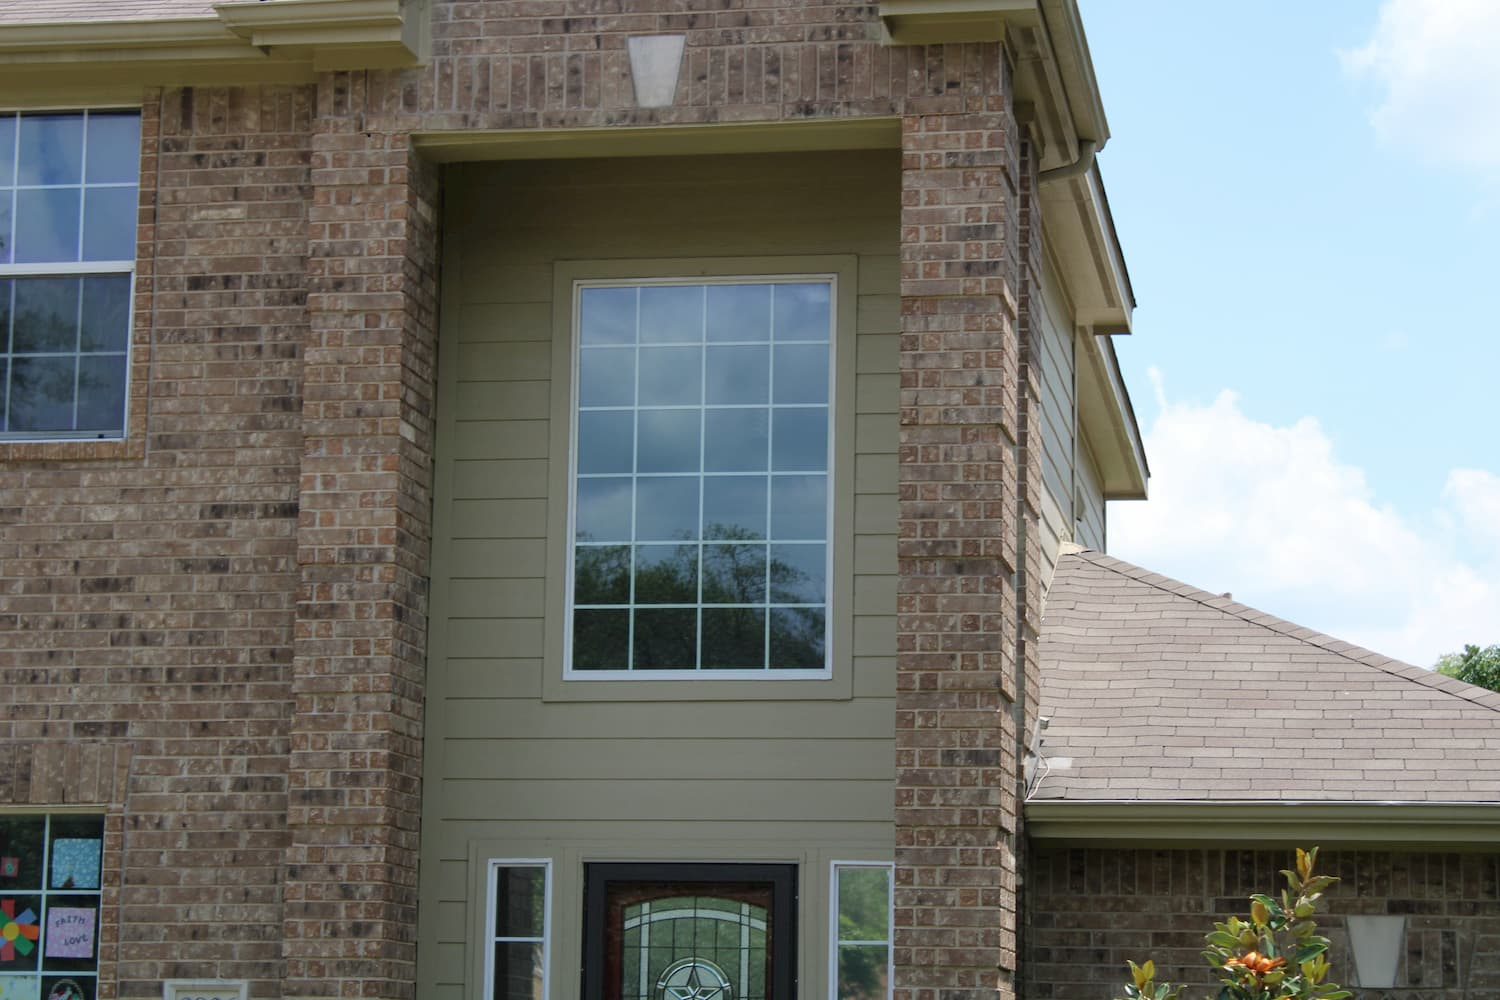 Replacement Pella 250 series windows for North Austin home